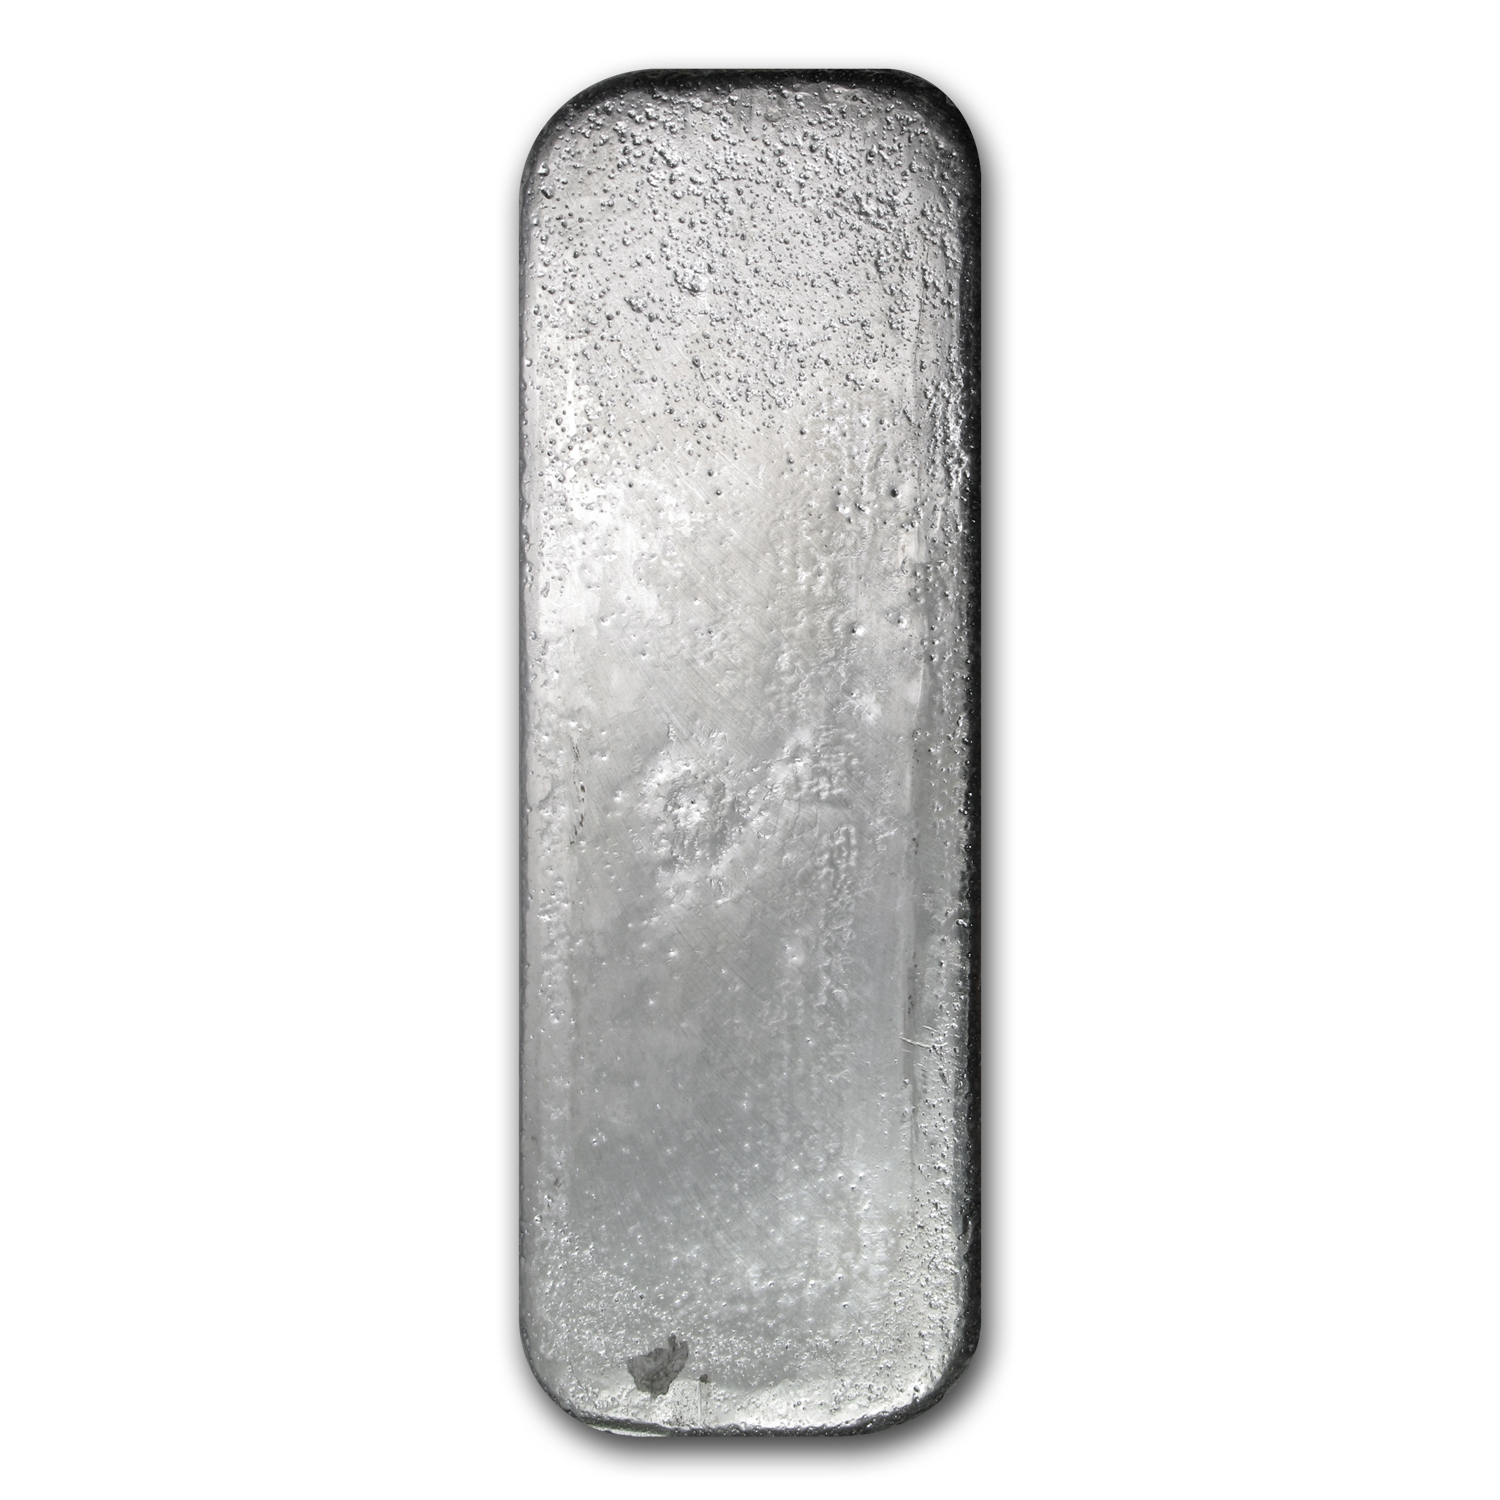 100 oz Silver Bar - Johnson Matthey (Secondary Market)